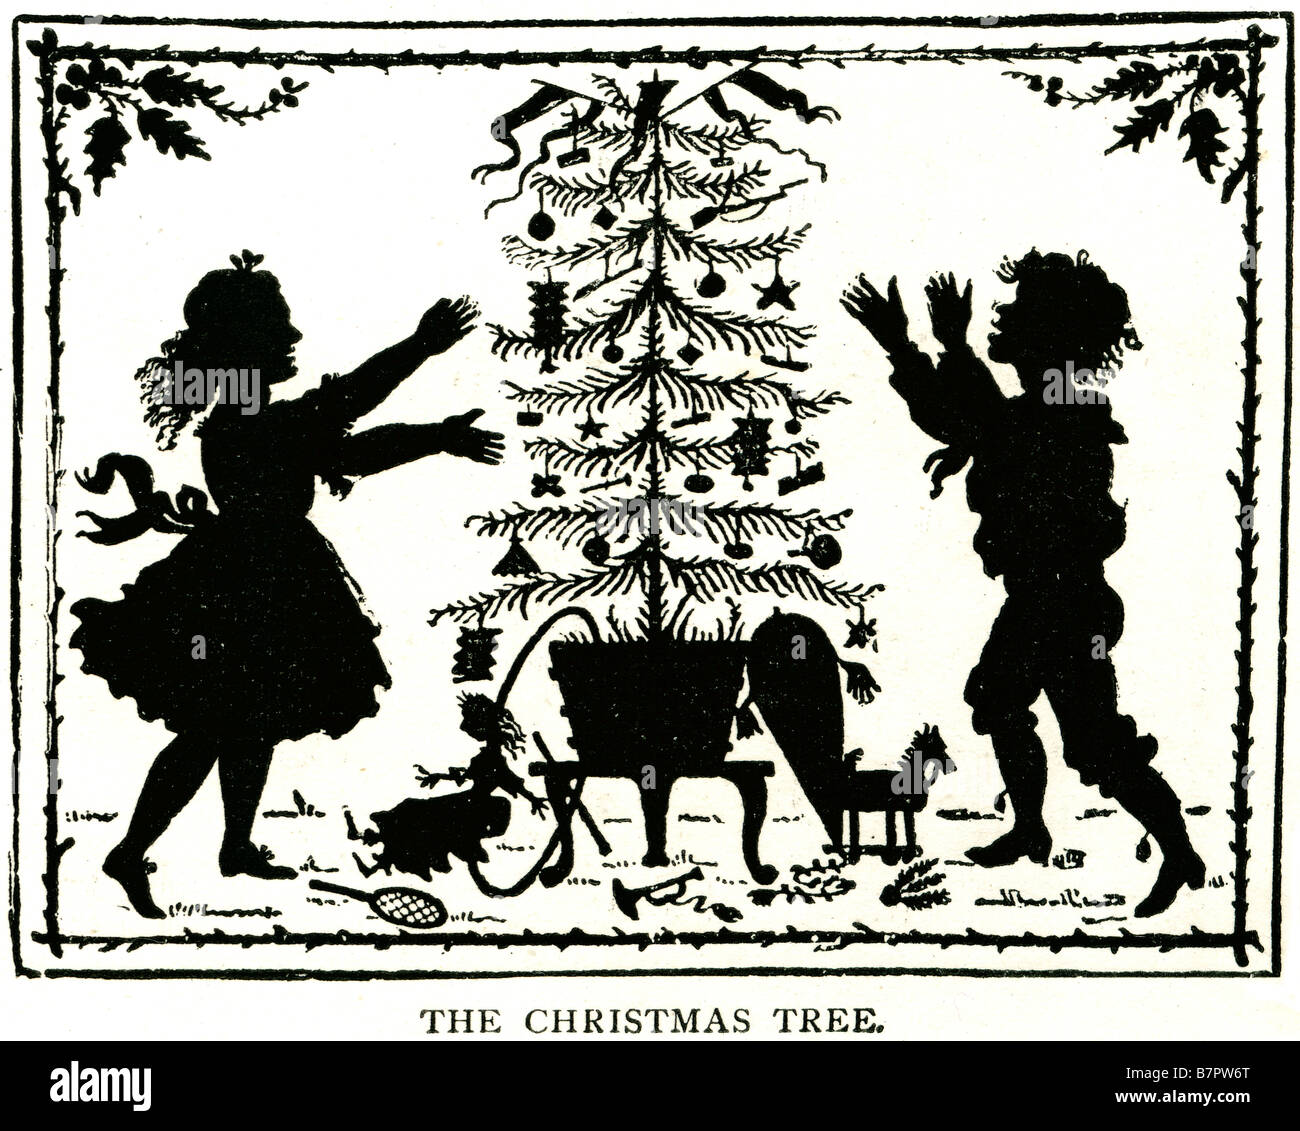 the christmass tree The Christmas tree is often explained as a Stock ...